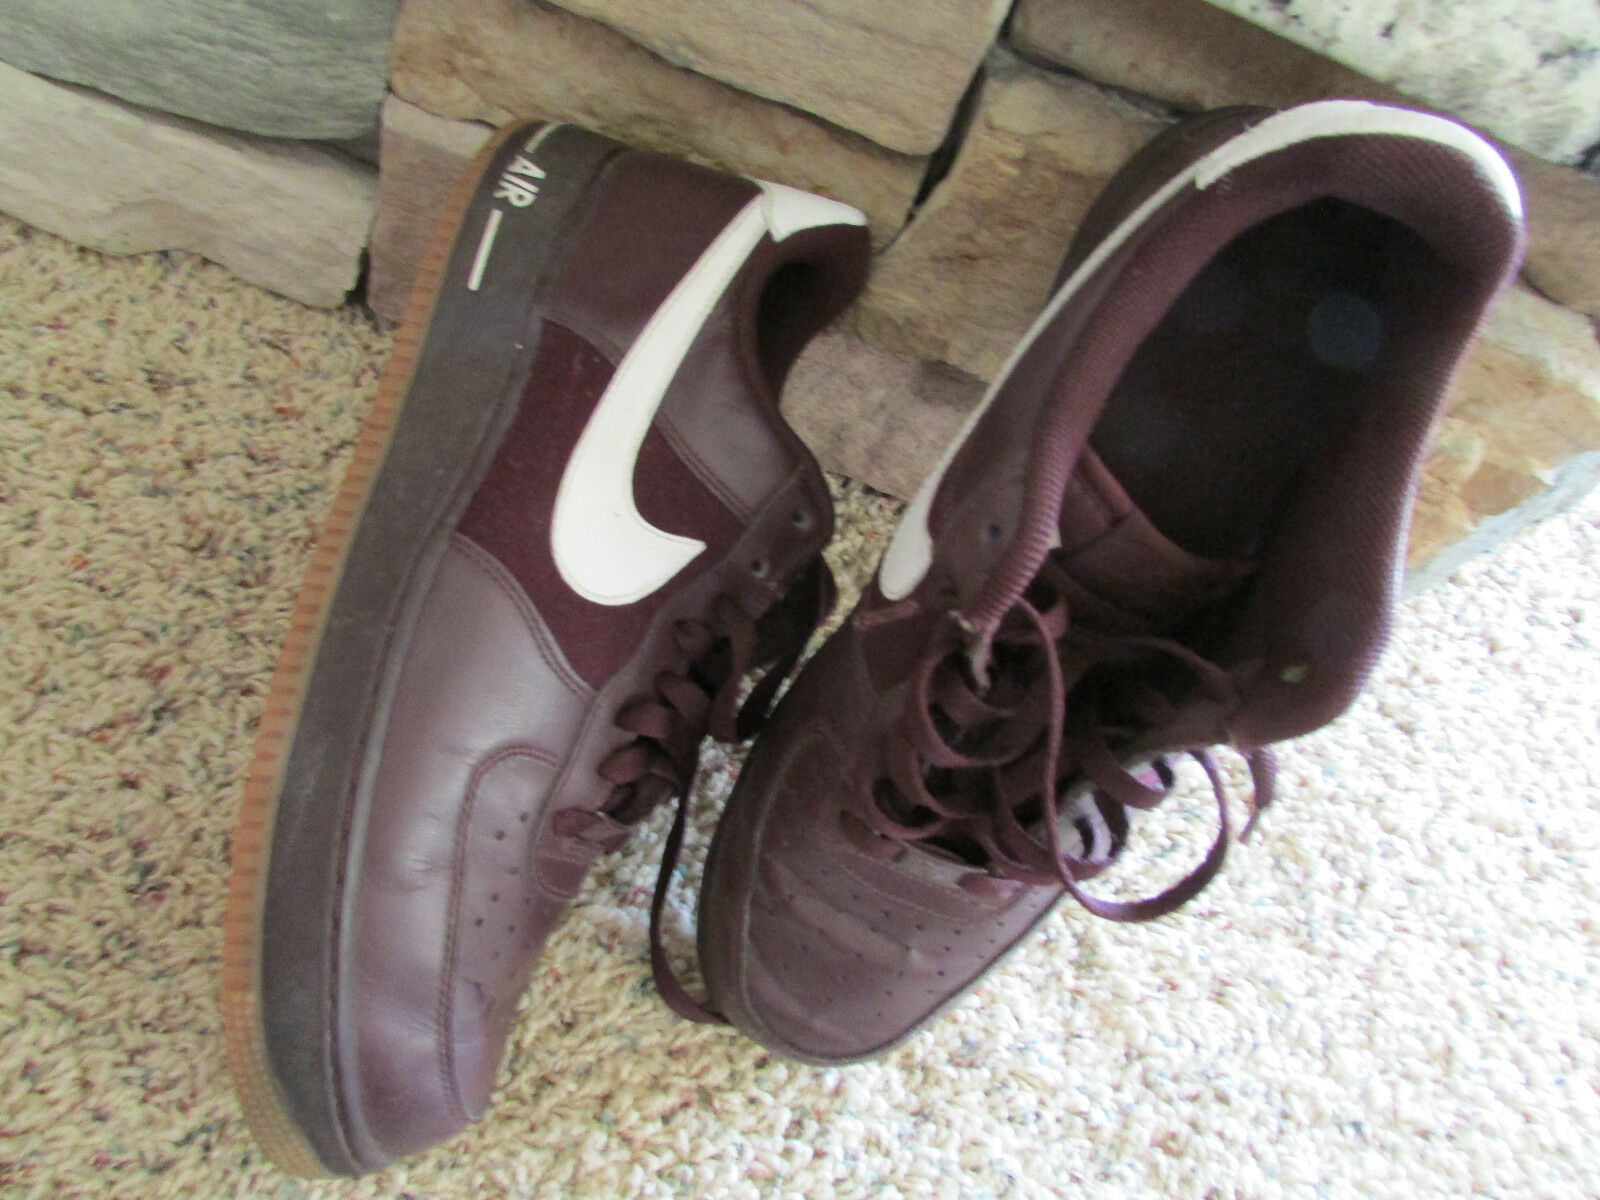 NIKE AIR FORCE 1 SNEAKERS SHOES MENS 11 BURGUNDY LEATHER 315122